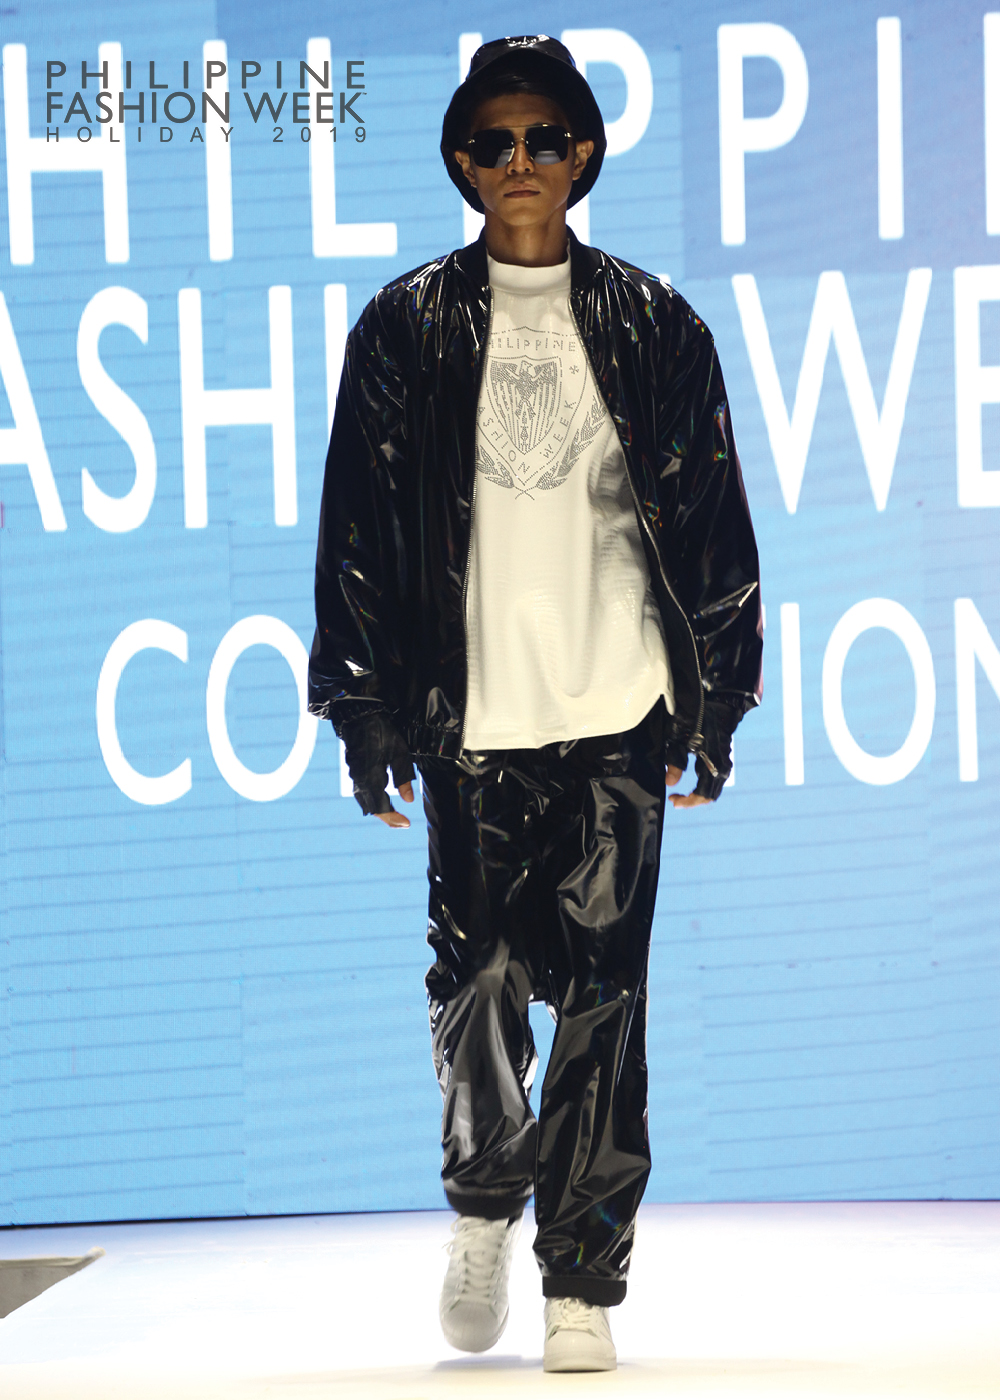 PhFW Collection_web4.jpg